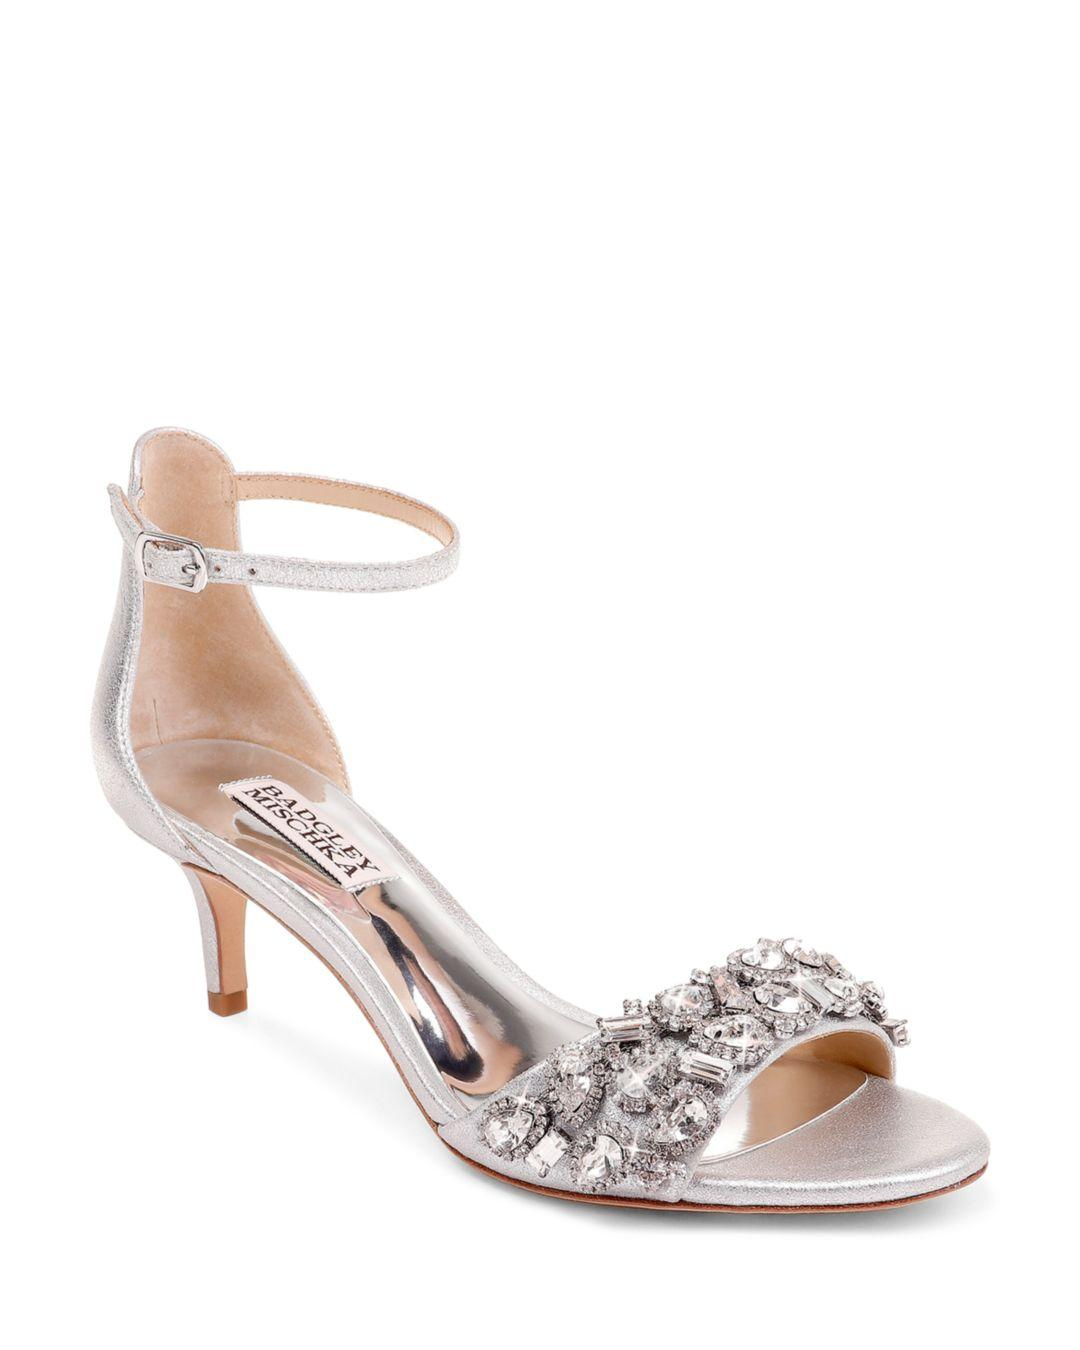 9970efbdb6f Lyst - Badgley Mischka Women s Lara Ii Embellished High-heel Sandals ...